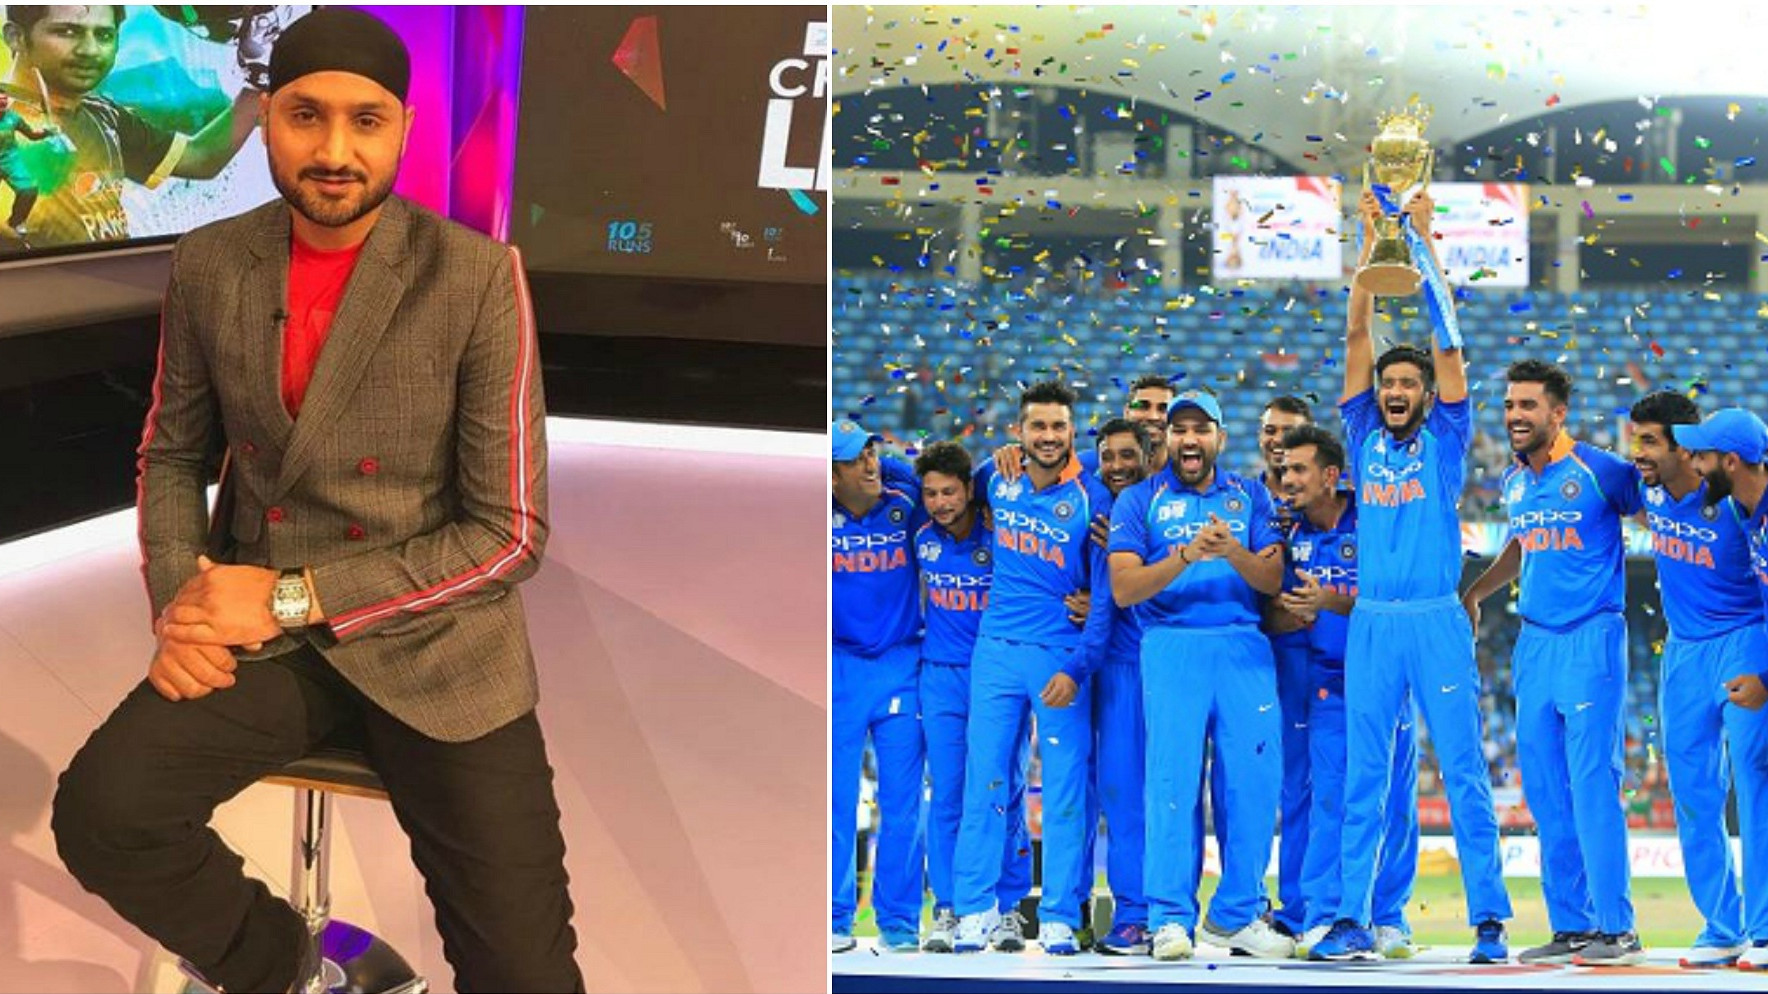 Asia Cup 2018: Team India showed why they are the best, says Harbhajan Singh